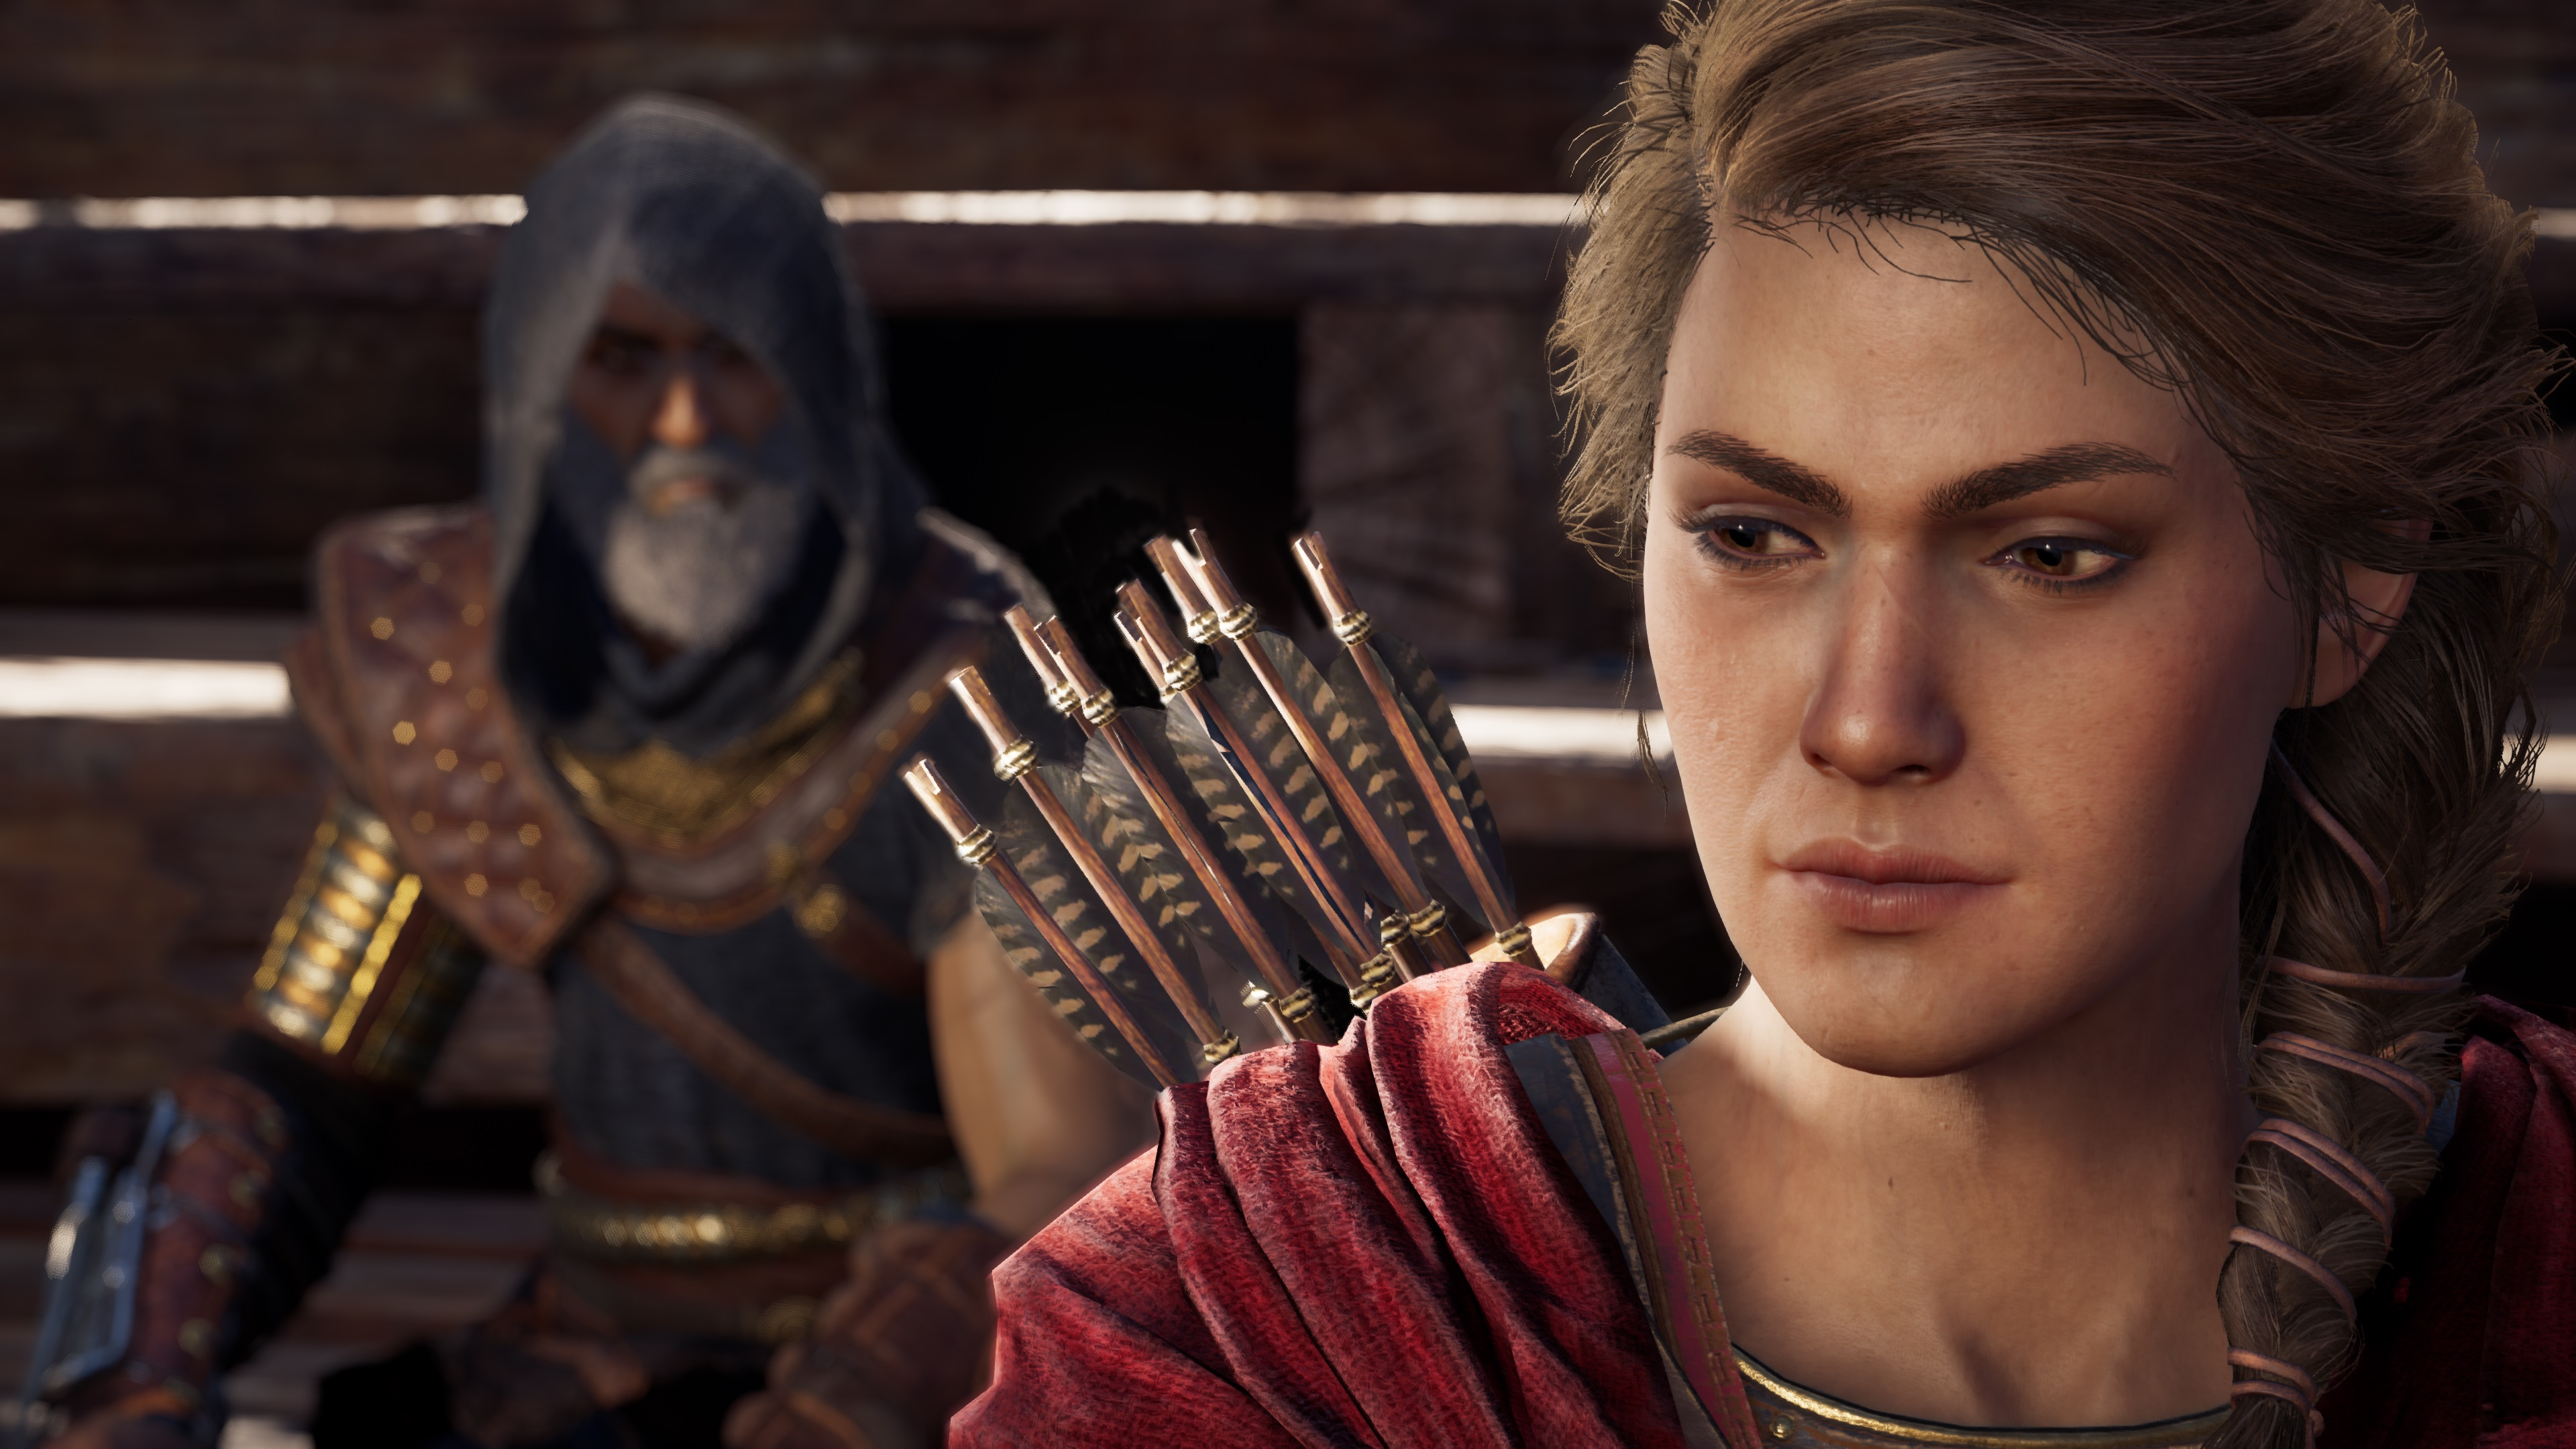 Assassin's Creed Odyssey - Kassandra with a hooded figure behind her